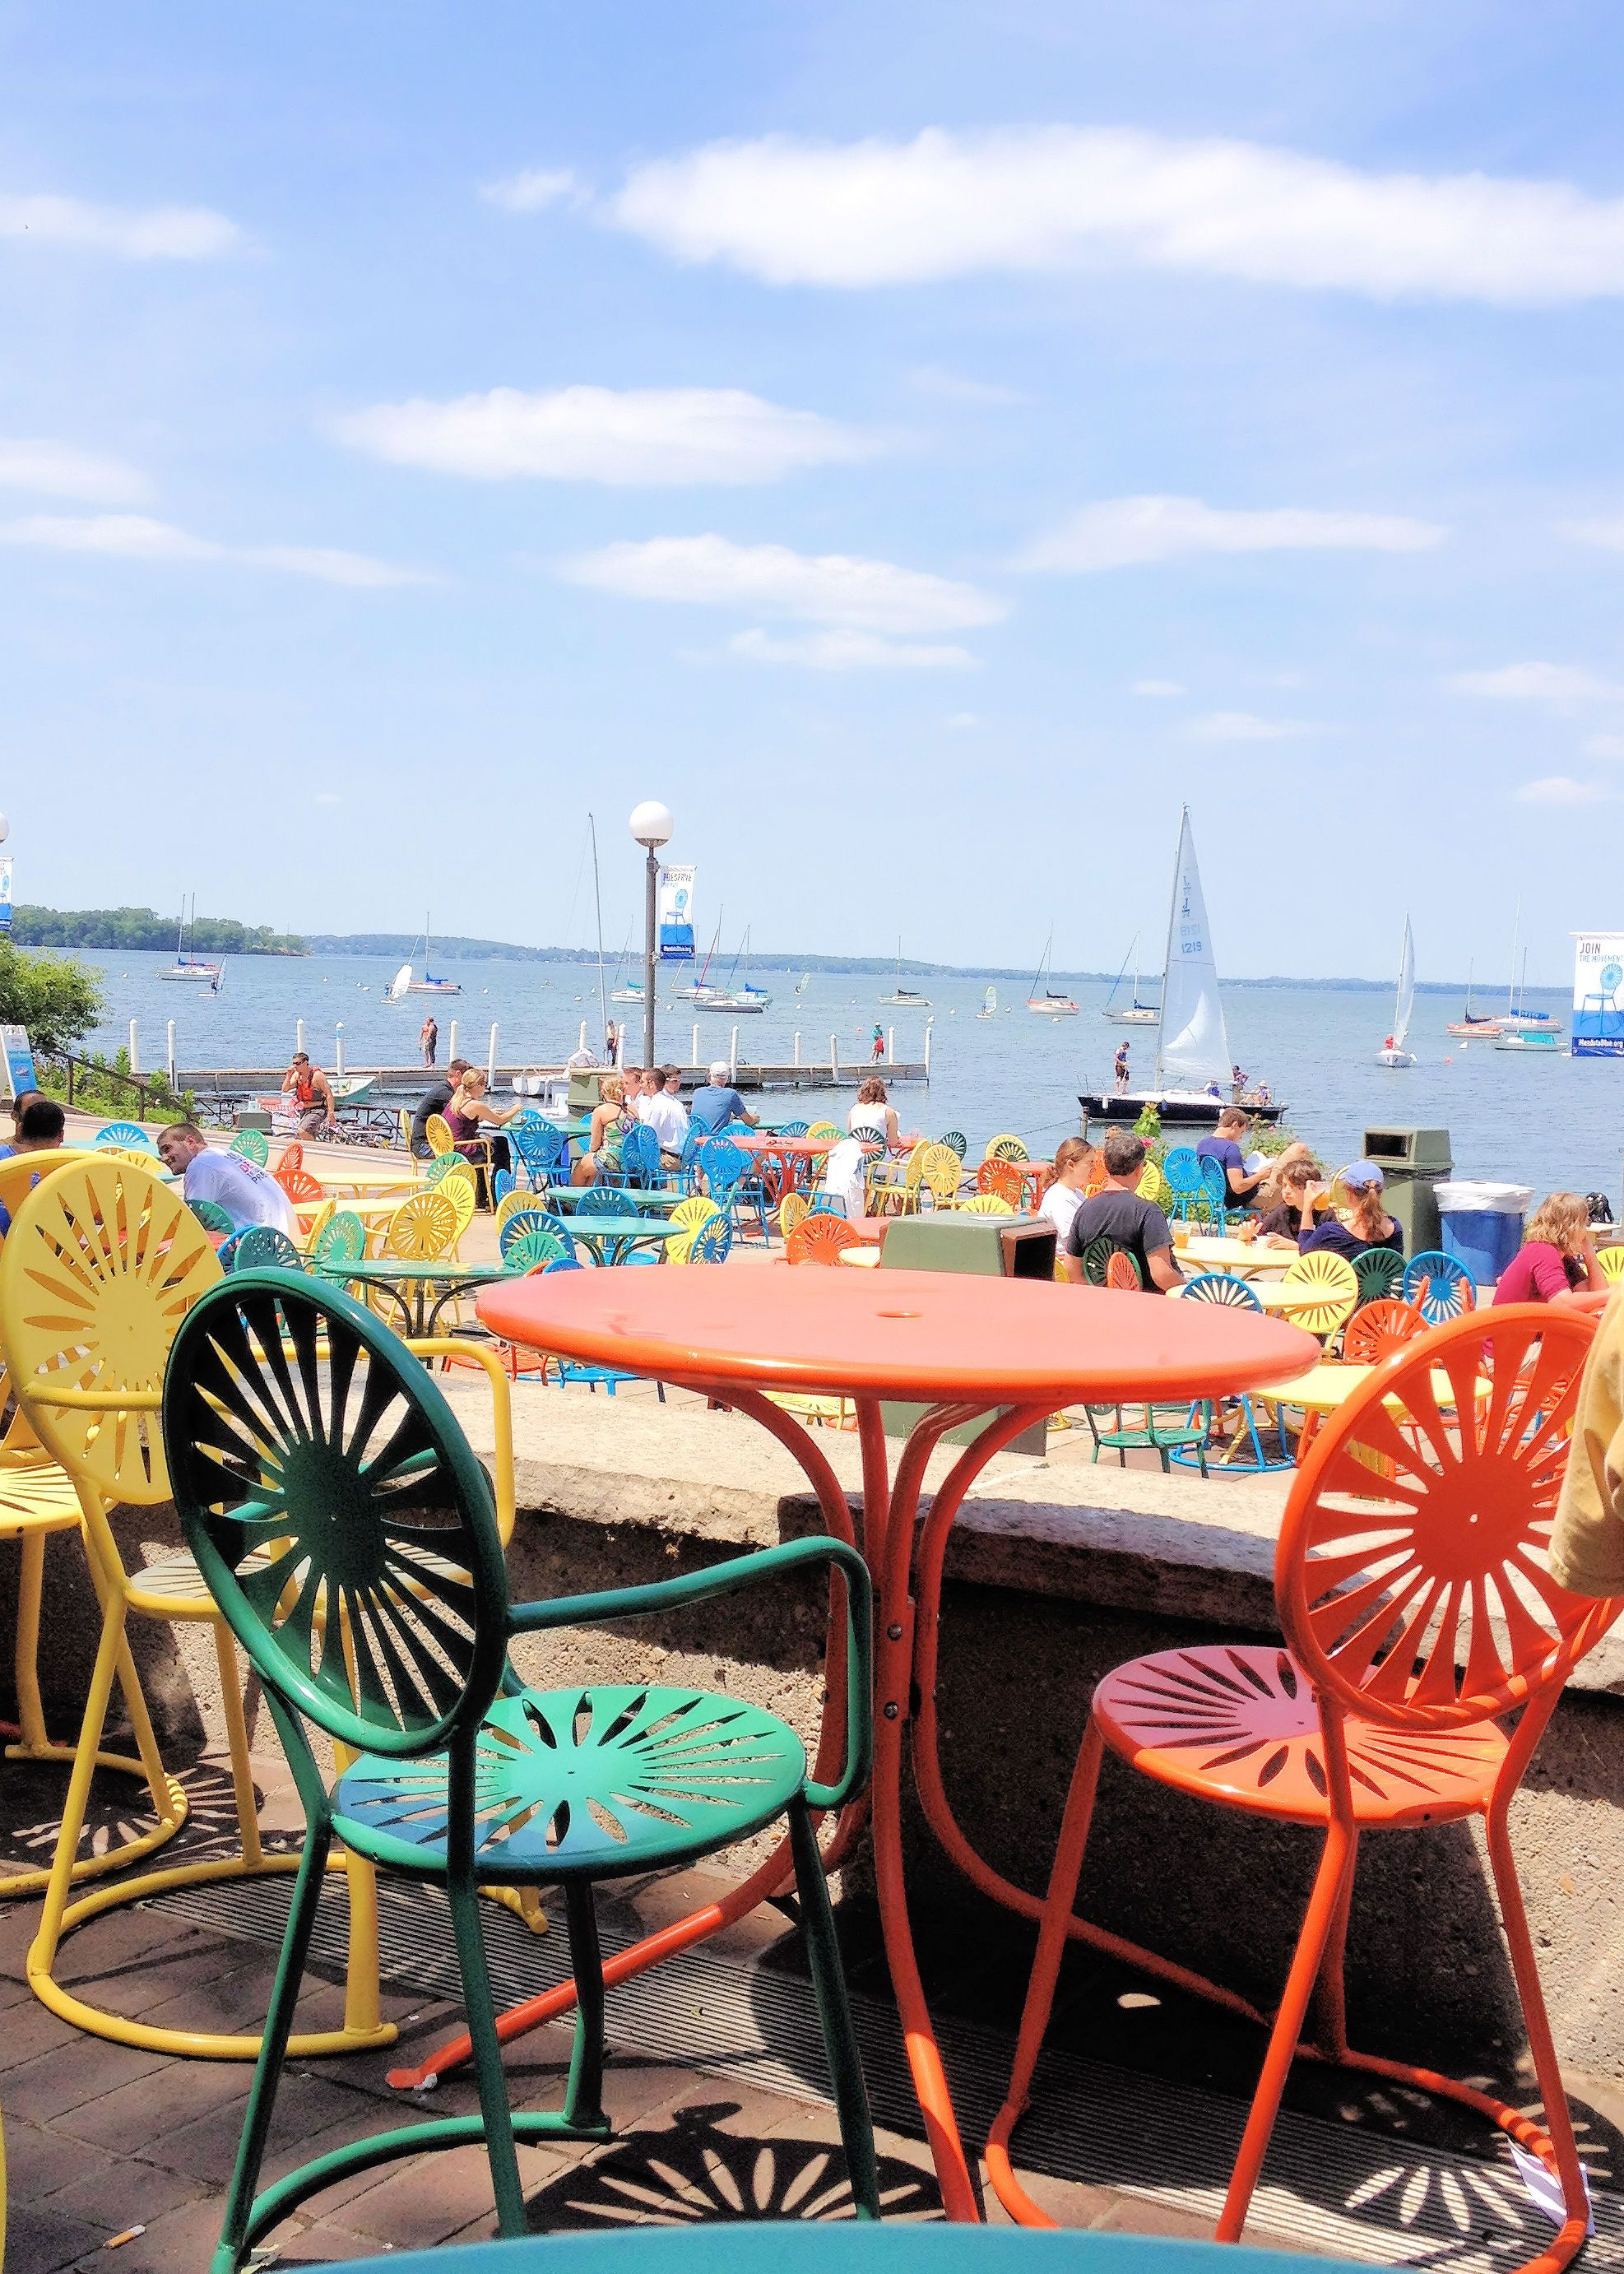 Madison's Memorial Union Terrace